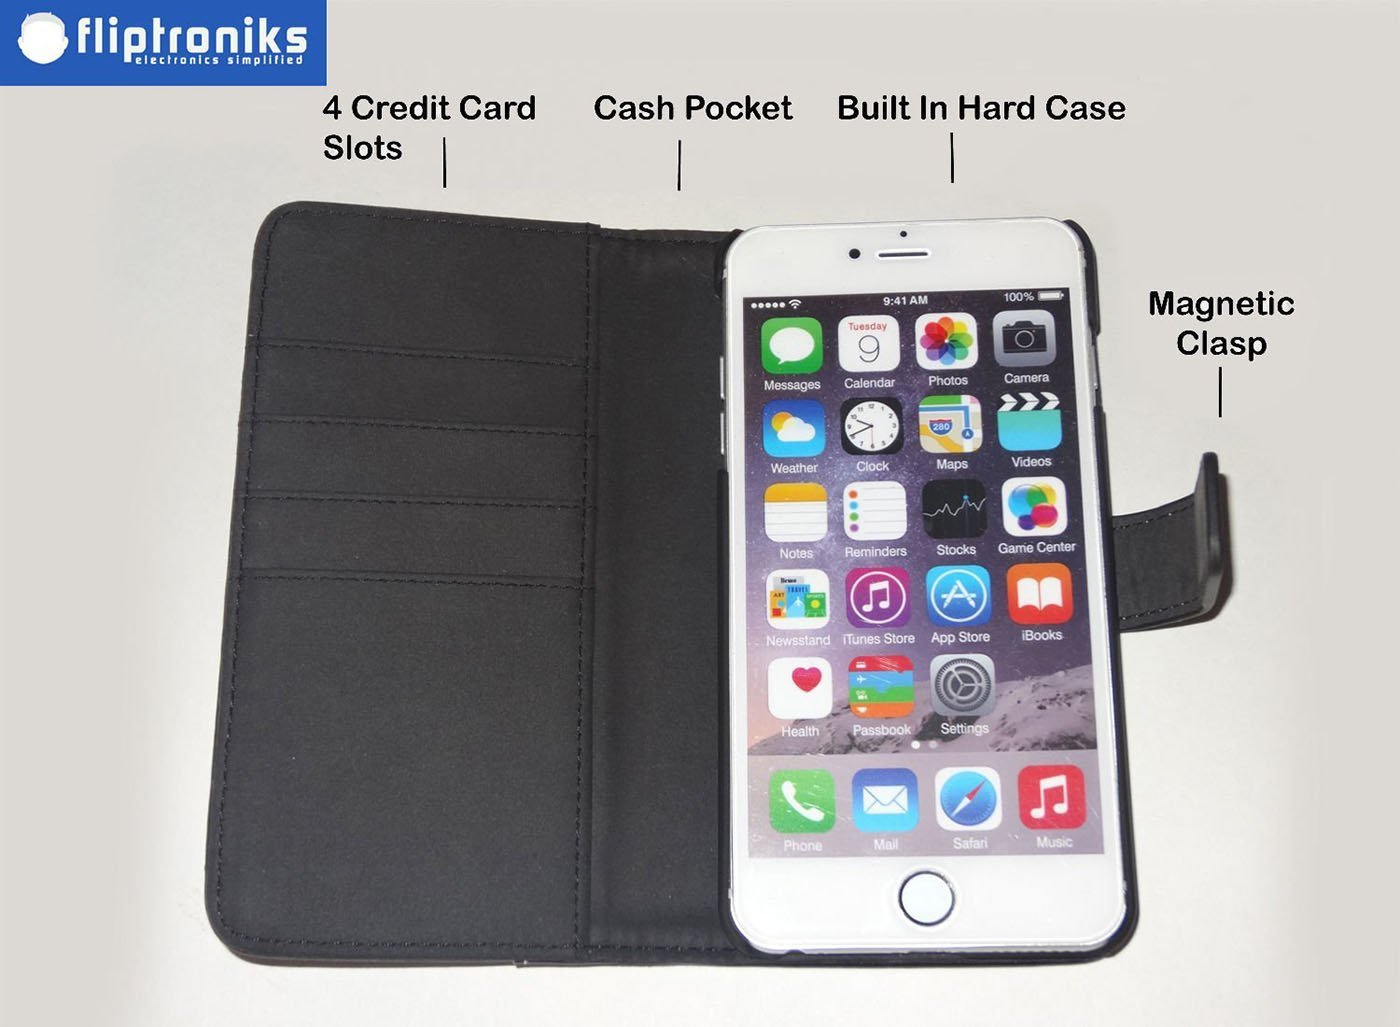 Fliptroniks 6 Plus Flip Case Top 3 Benefits